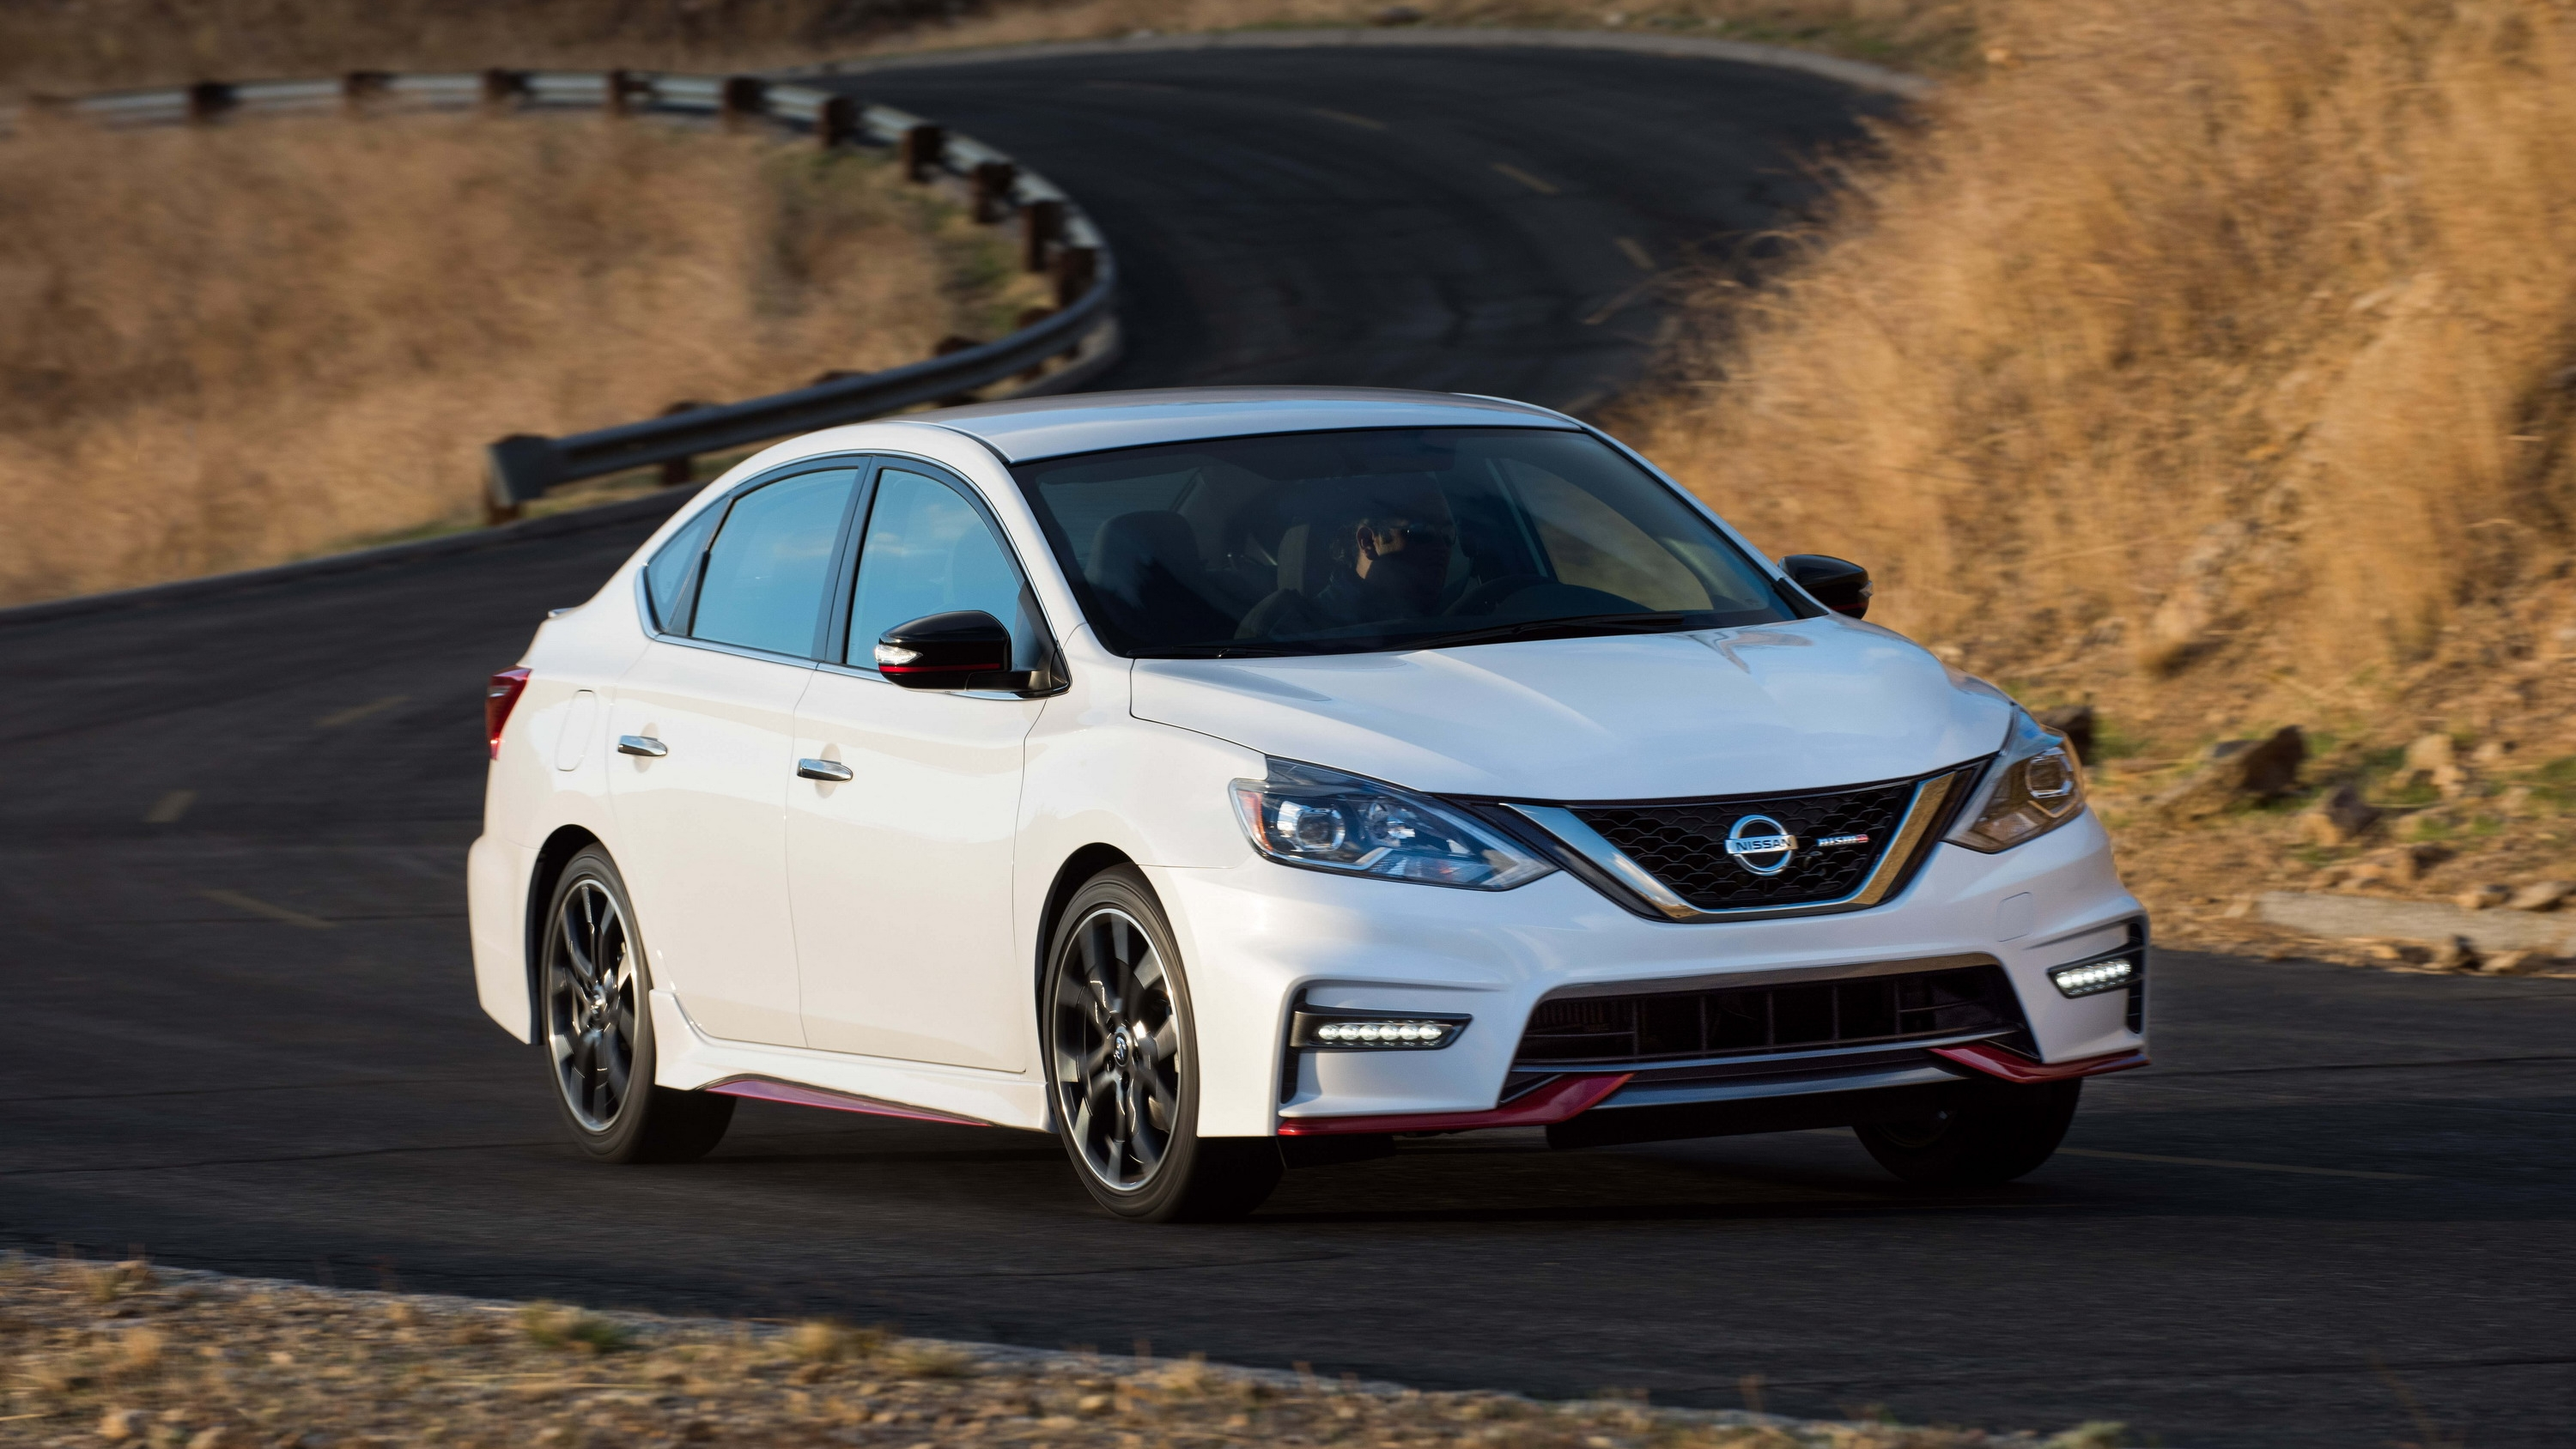 New 2019 Nissan Sentra S 4d Sedan In Shelbyville N11810 Manual Guide